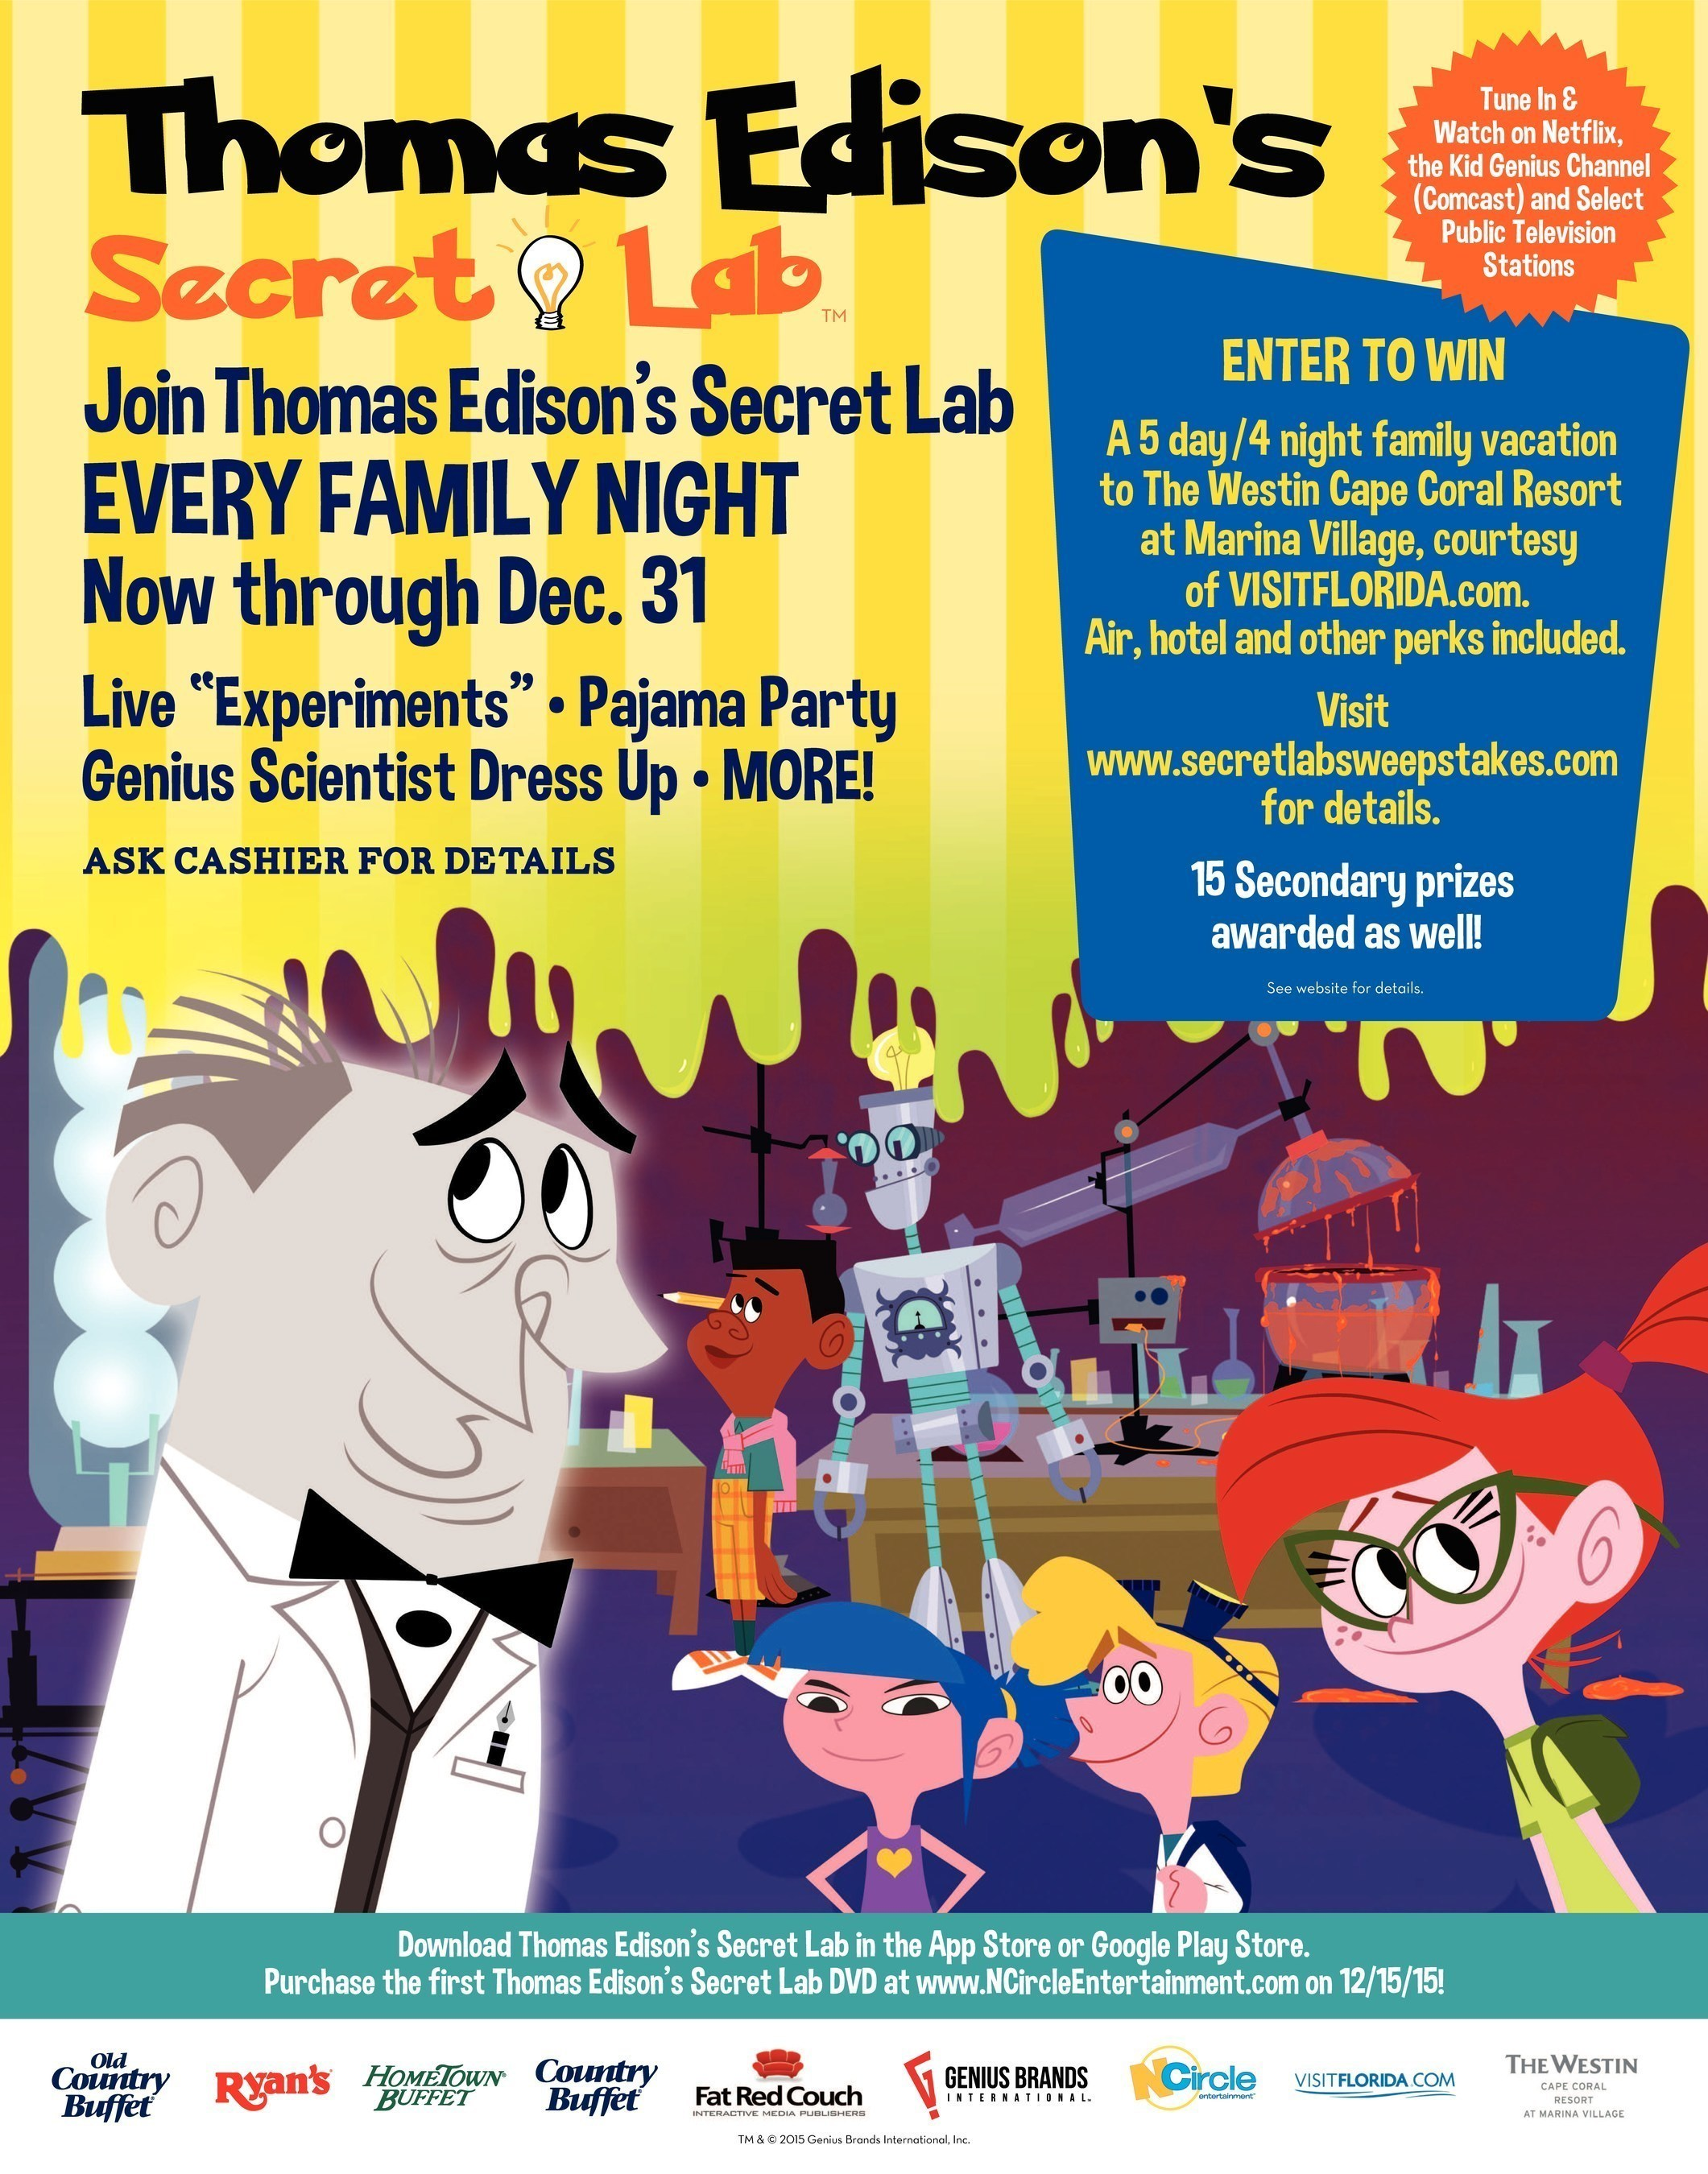 Ovation Brands® Restaurants Introduce Science-Filled Family Nights With Thomas Edison's Secret Lab